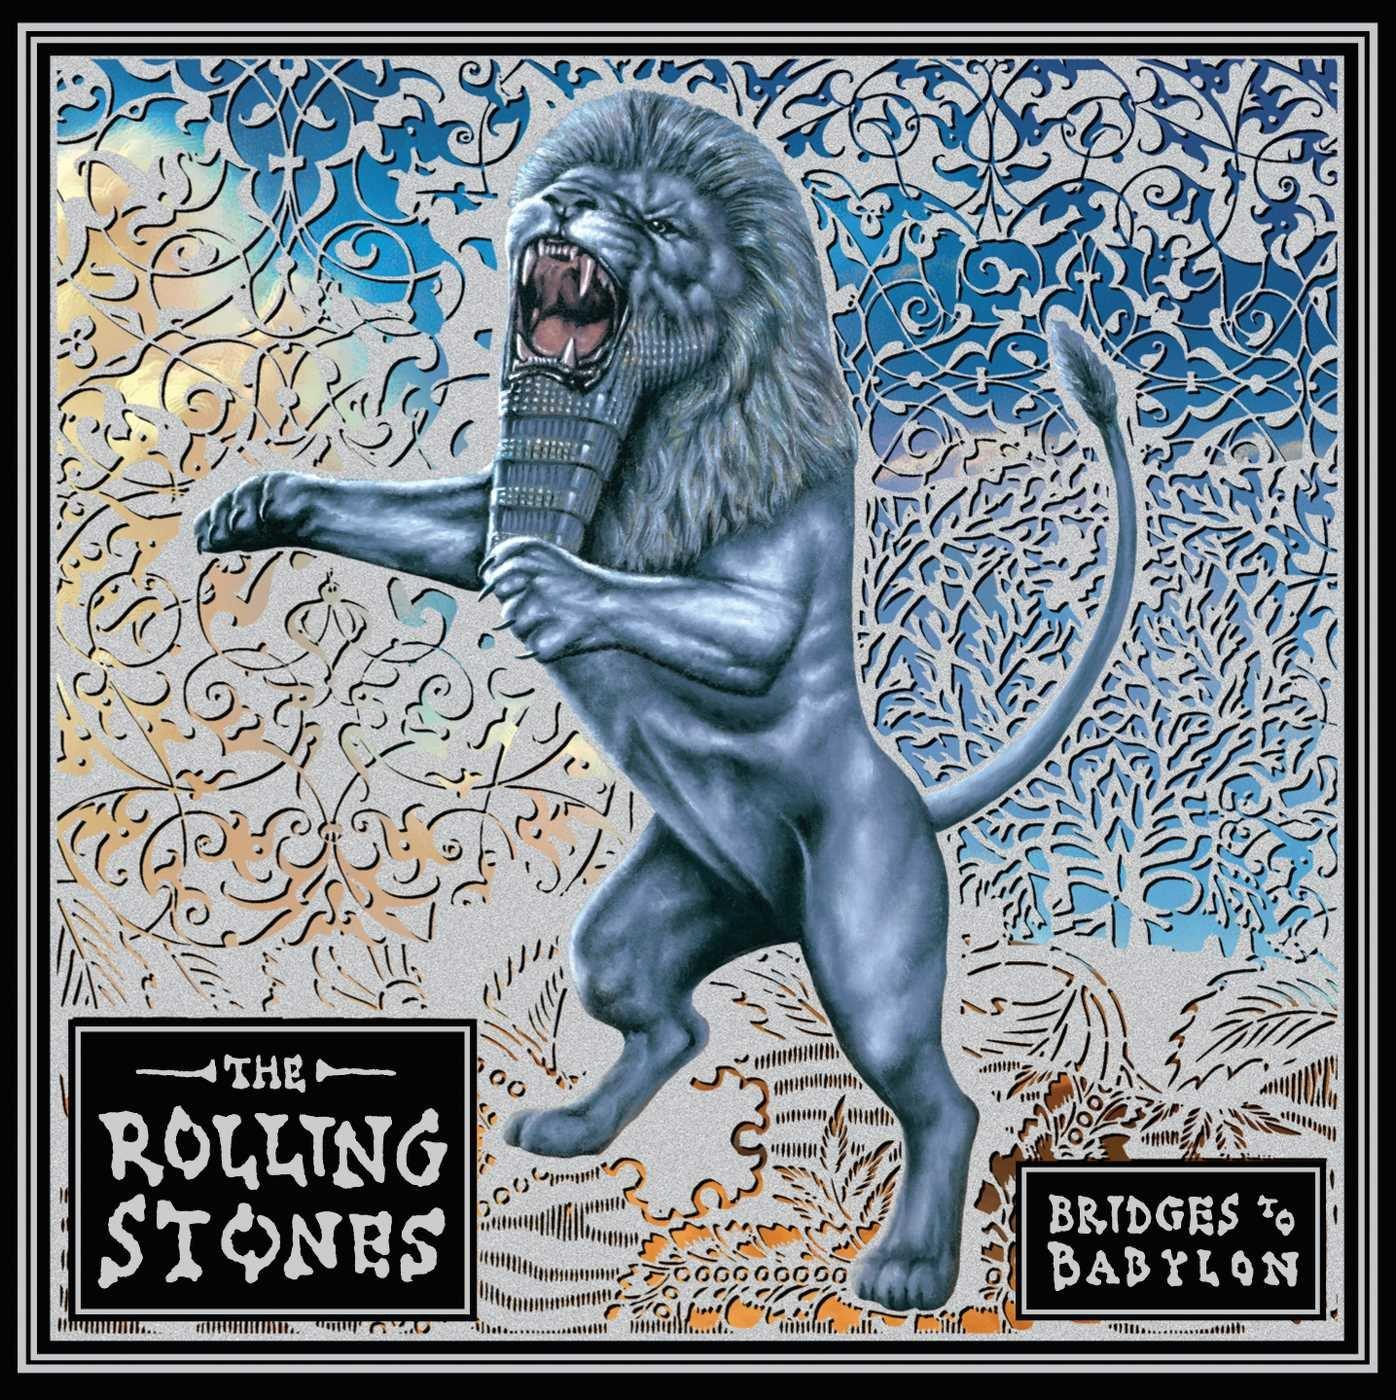 The Rolling Stones - Bridges To Babylon [2xLP]